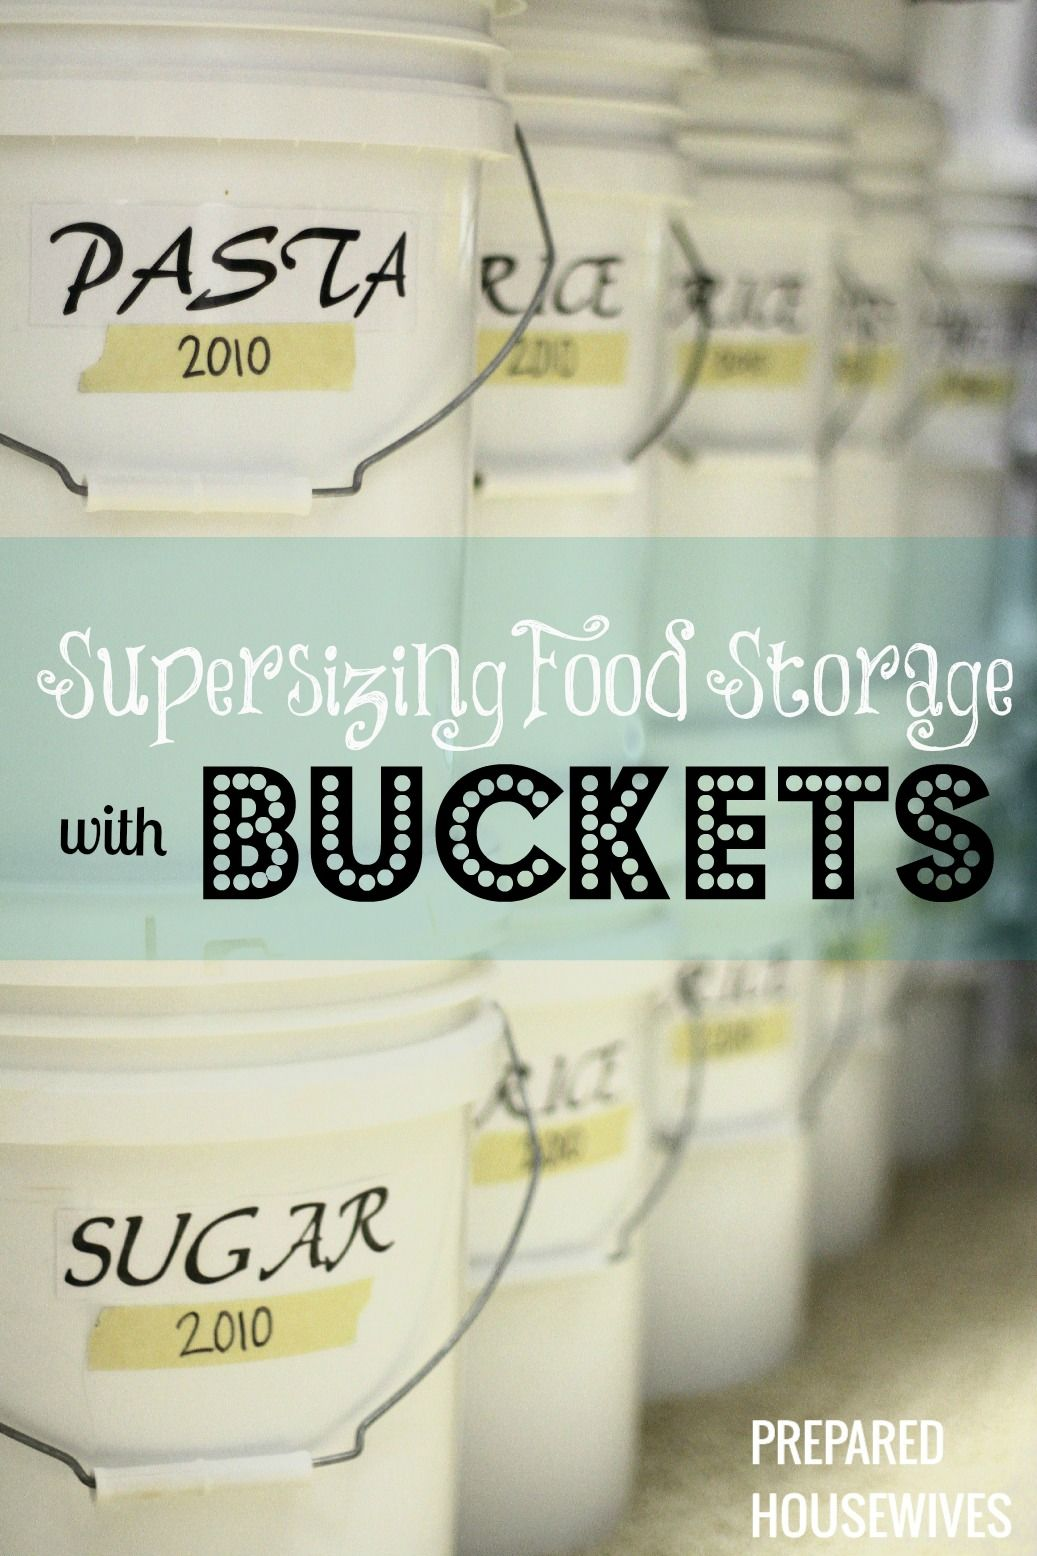 Learn how to package food properly with buckets and mylar